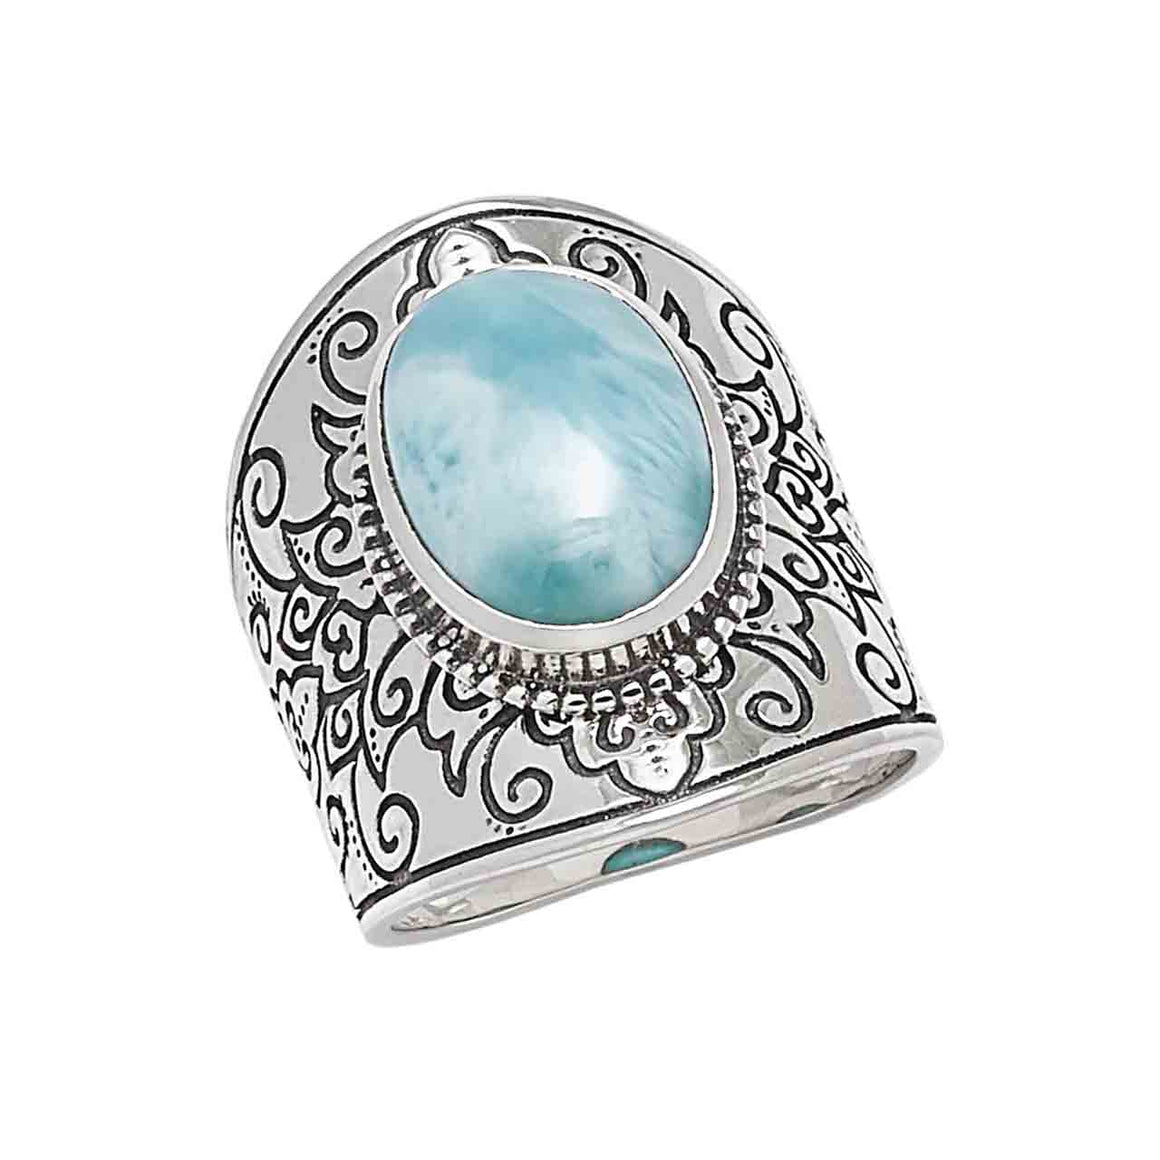 Larimar Ring with Oxidized Design